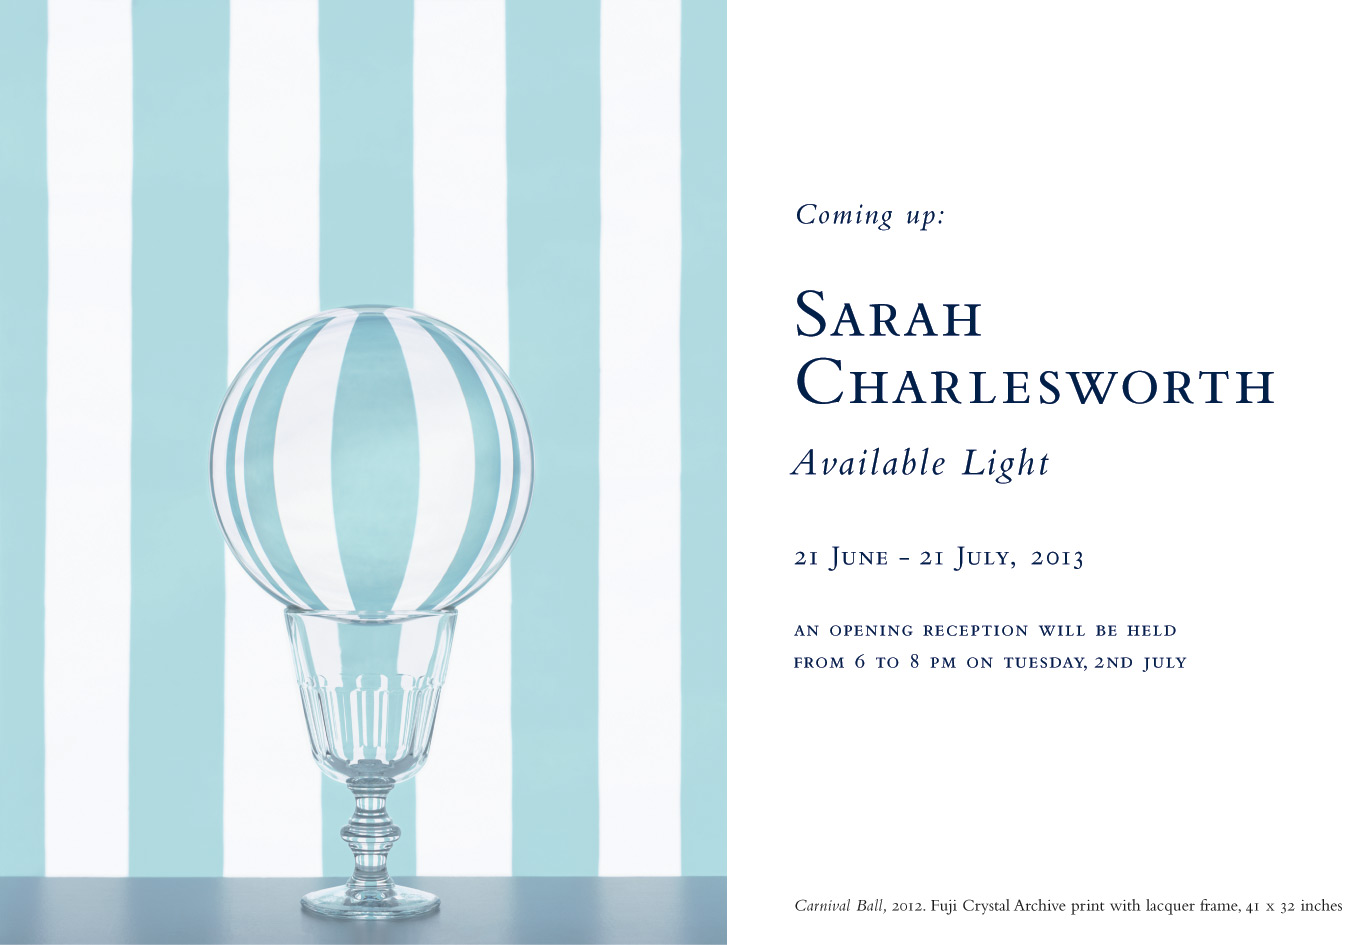 Sarah Charlesworth: Available Light, at Baldwin Gallery, Aspen, 21 June - 21 July, 2013.